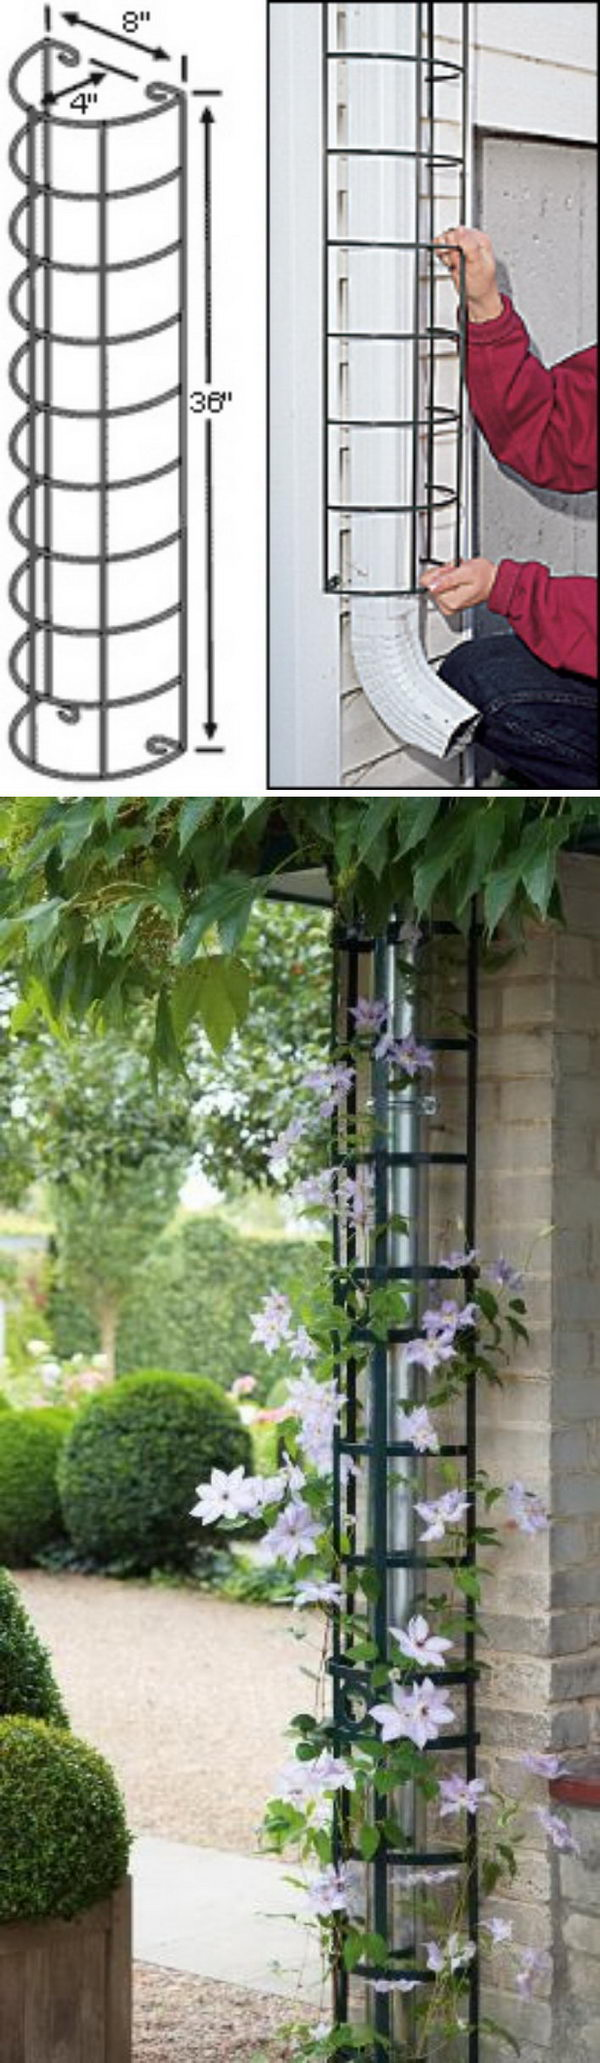 20+ Awesome DIY Garden Trellis Projects - Hative